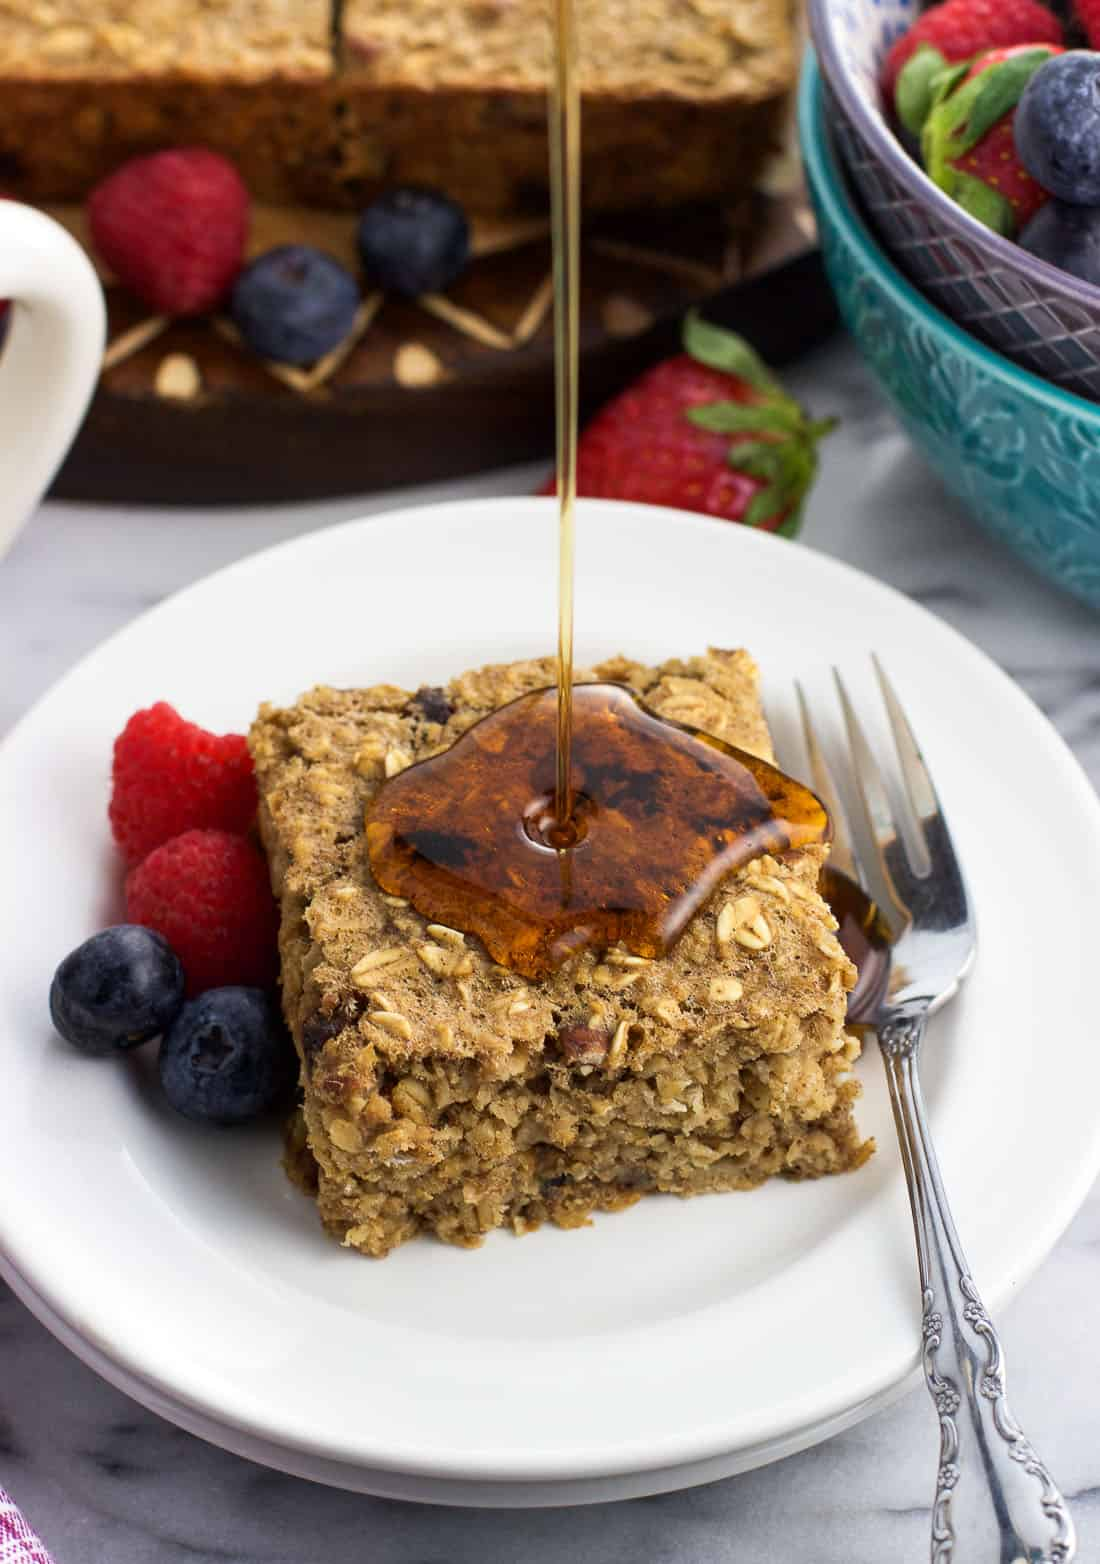 Fresh fruit and a baked oatmeal square on a plate being drizzled by maple syrup.